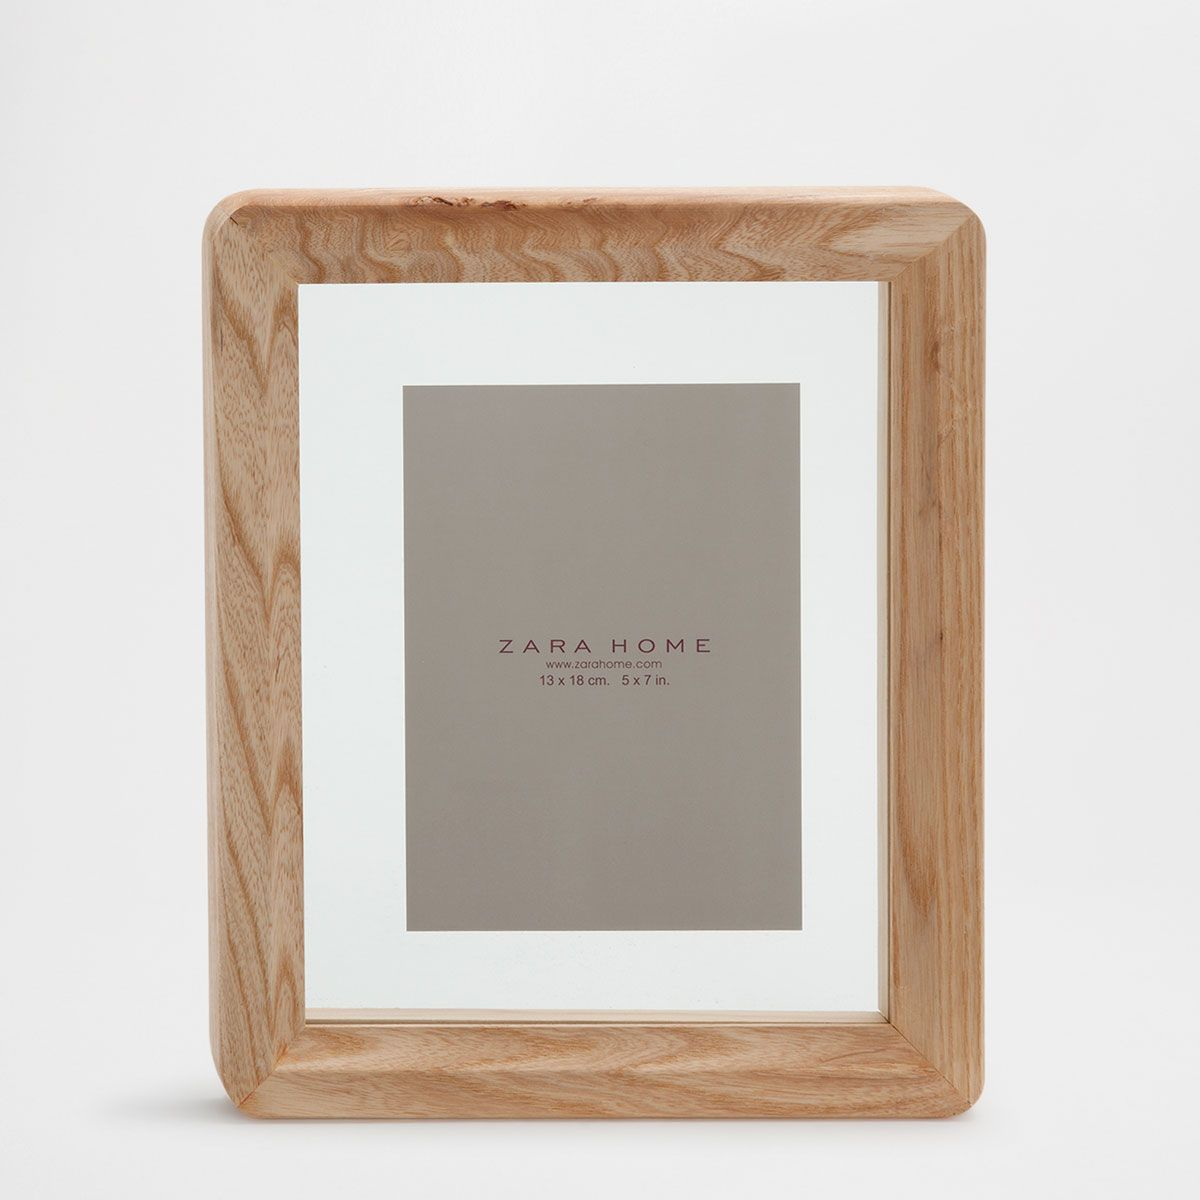 Image 1 Of The Product Light Wooden Wall Frame